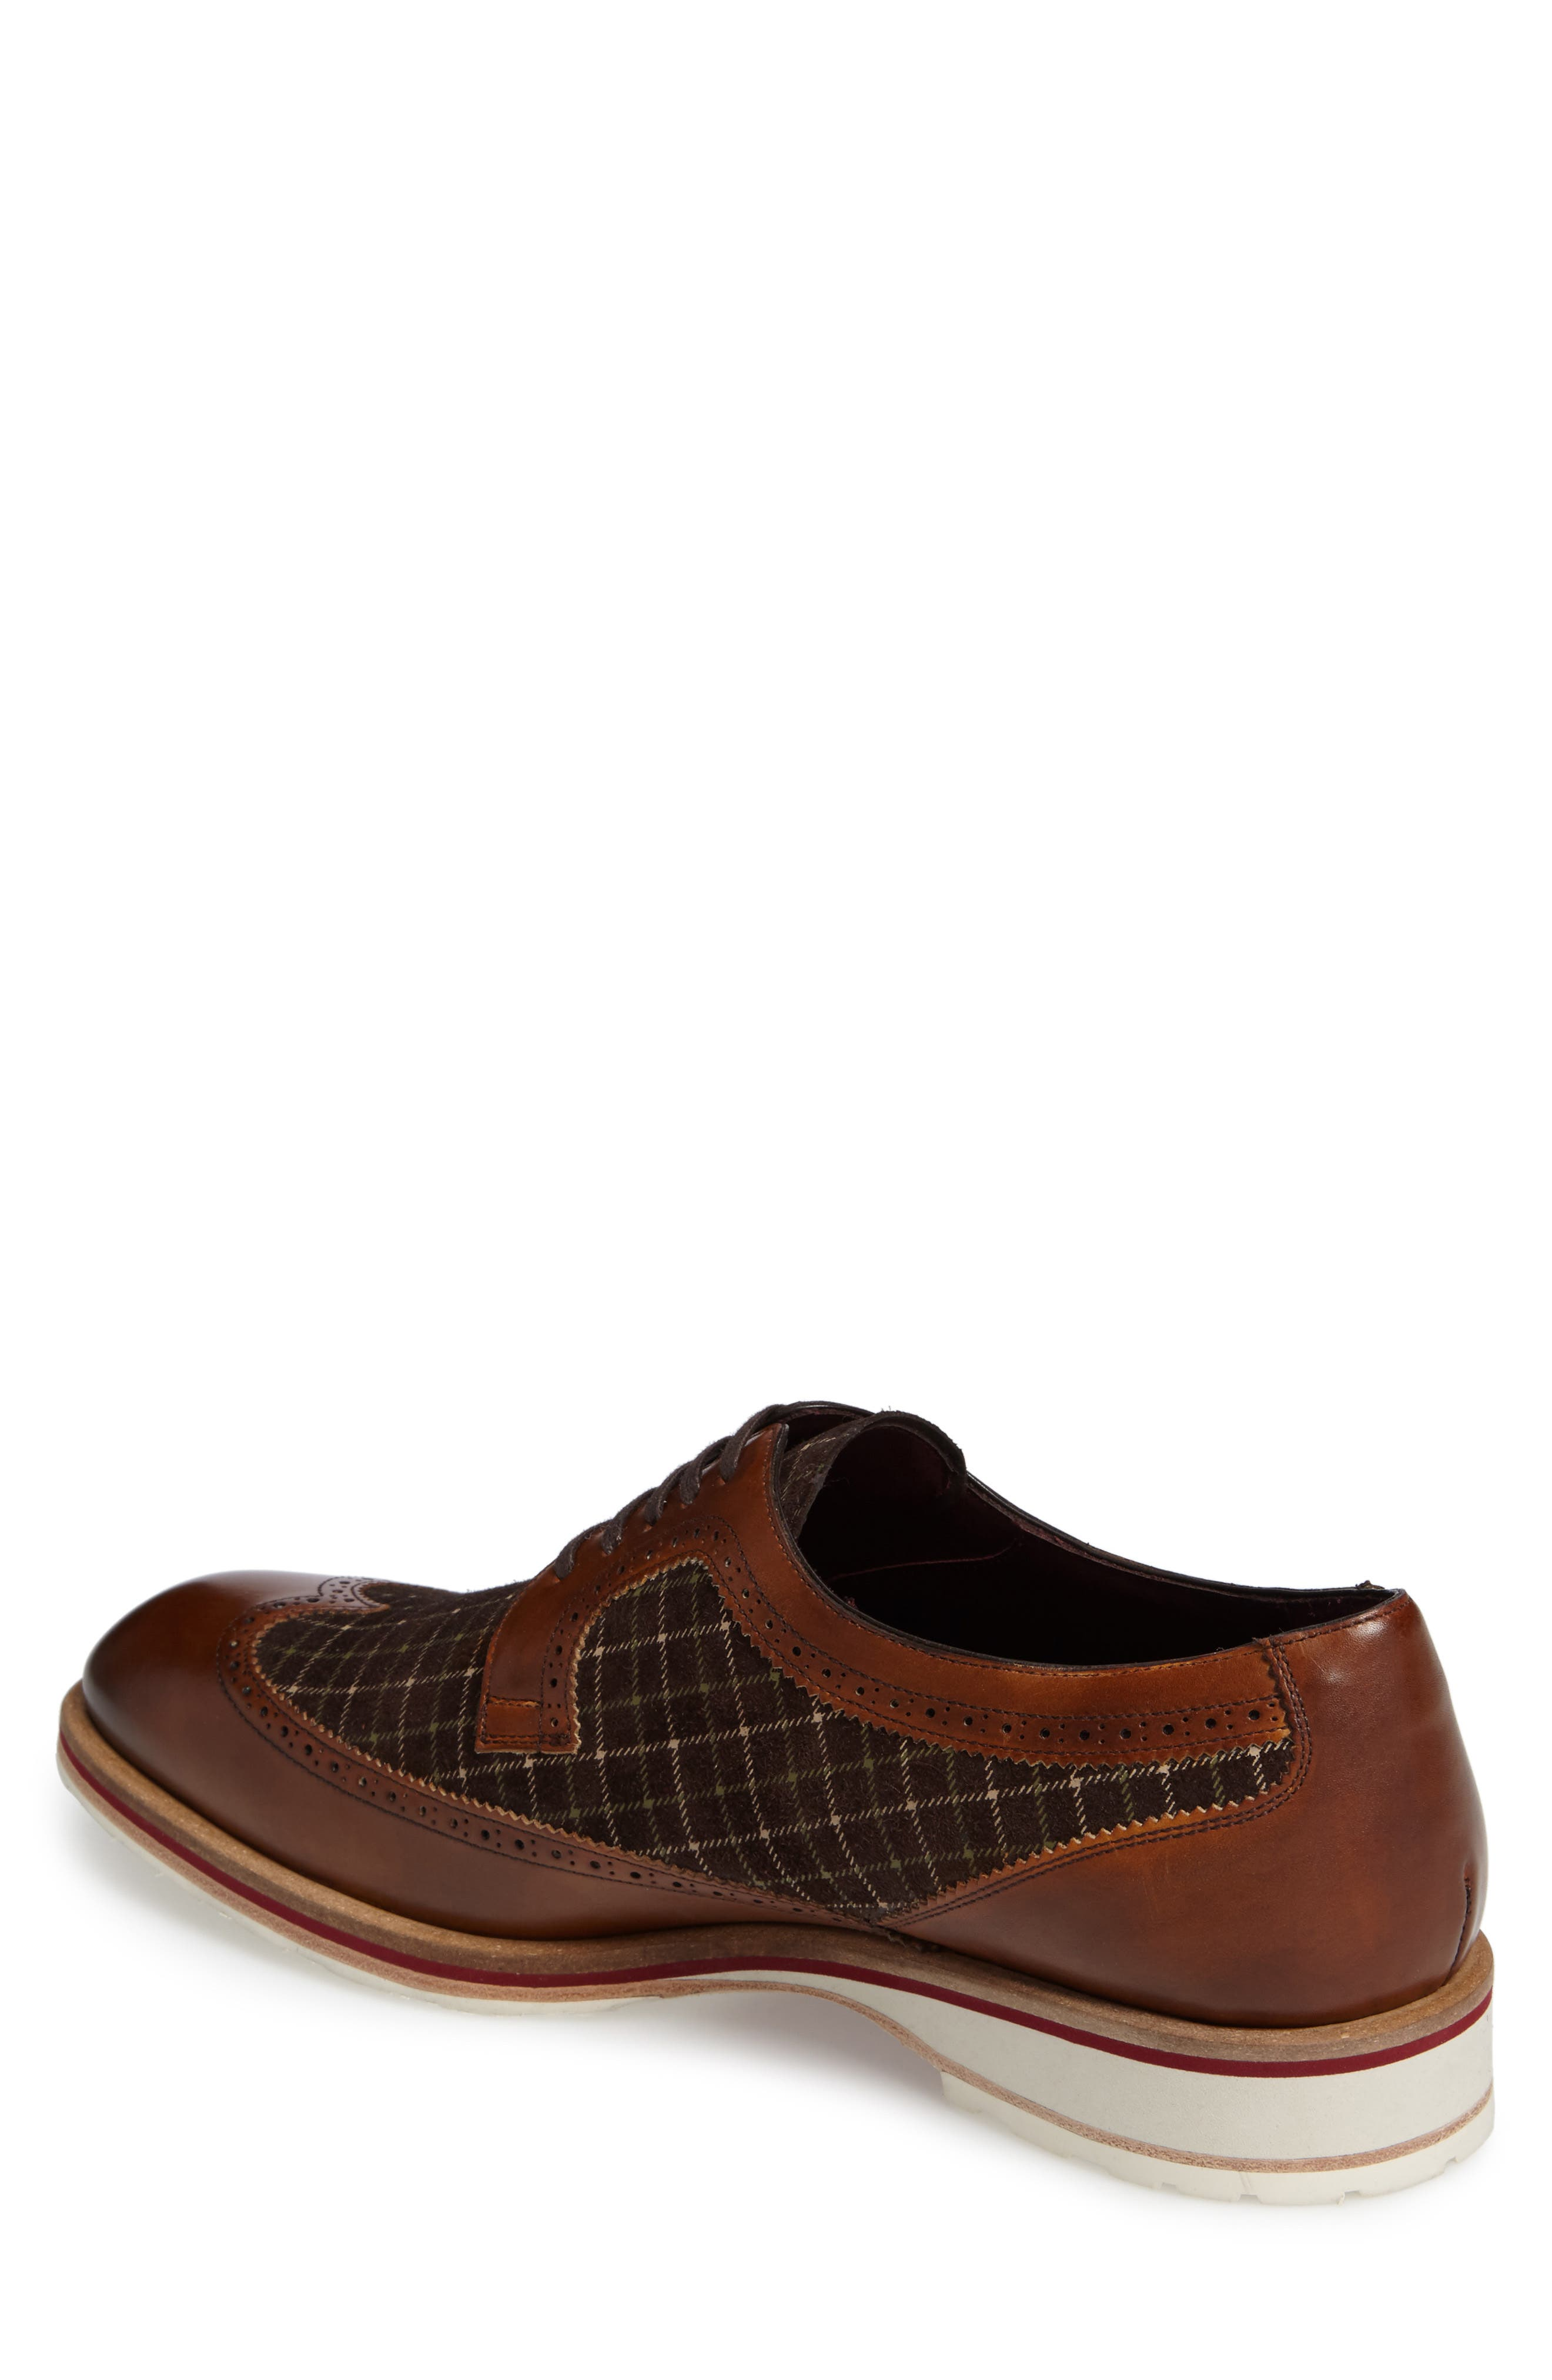 Paulov Tattersall Wingtip,                             Alternate thumbnail 2, color,                             Cognac/ Brown Leather